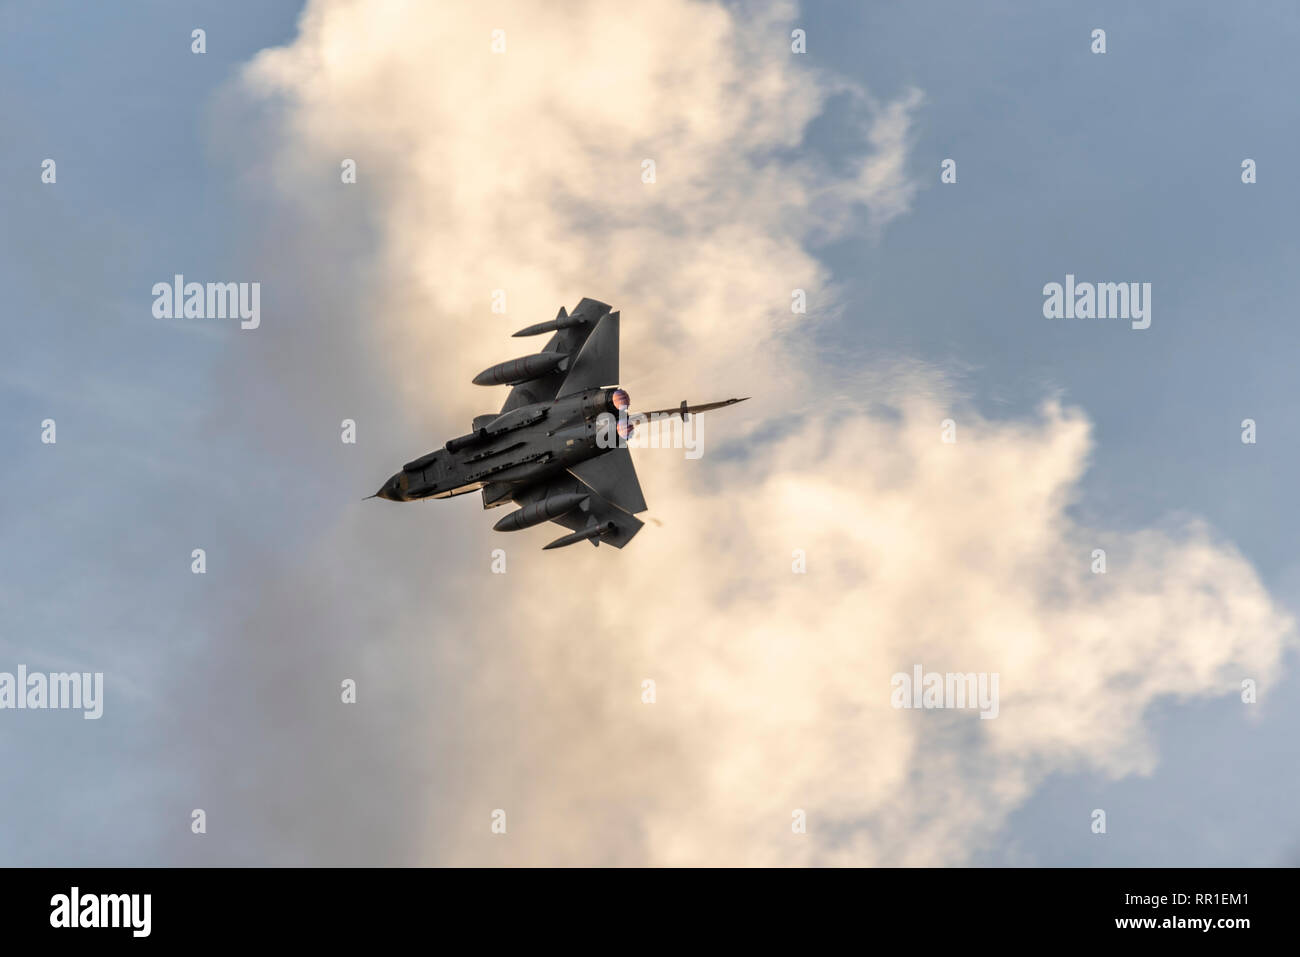 Royal Air Force Panavia Tornado GR4 breaking into the circuit at RAF Marham with full afterburner, reheat. Winter afternoon light. Farewell flypast - Stock Image